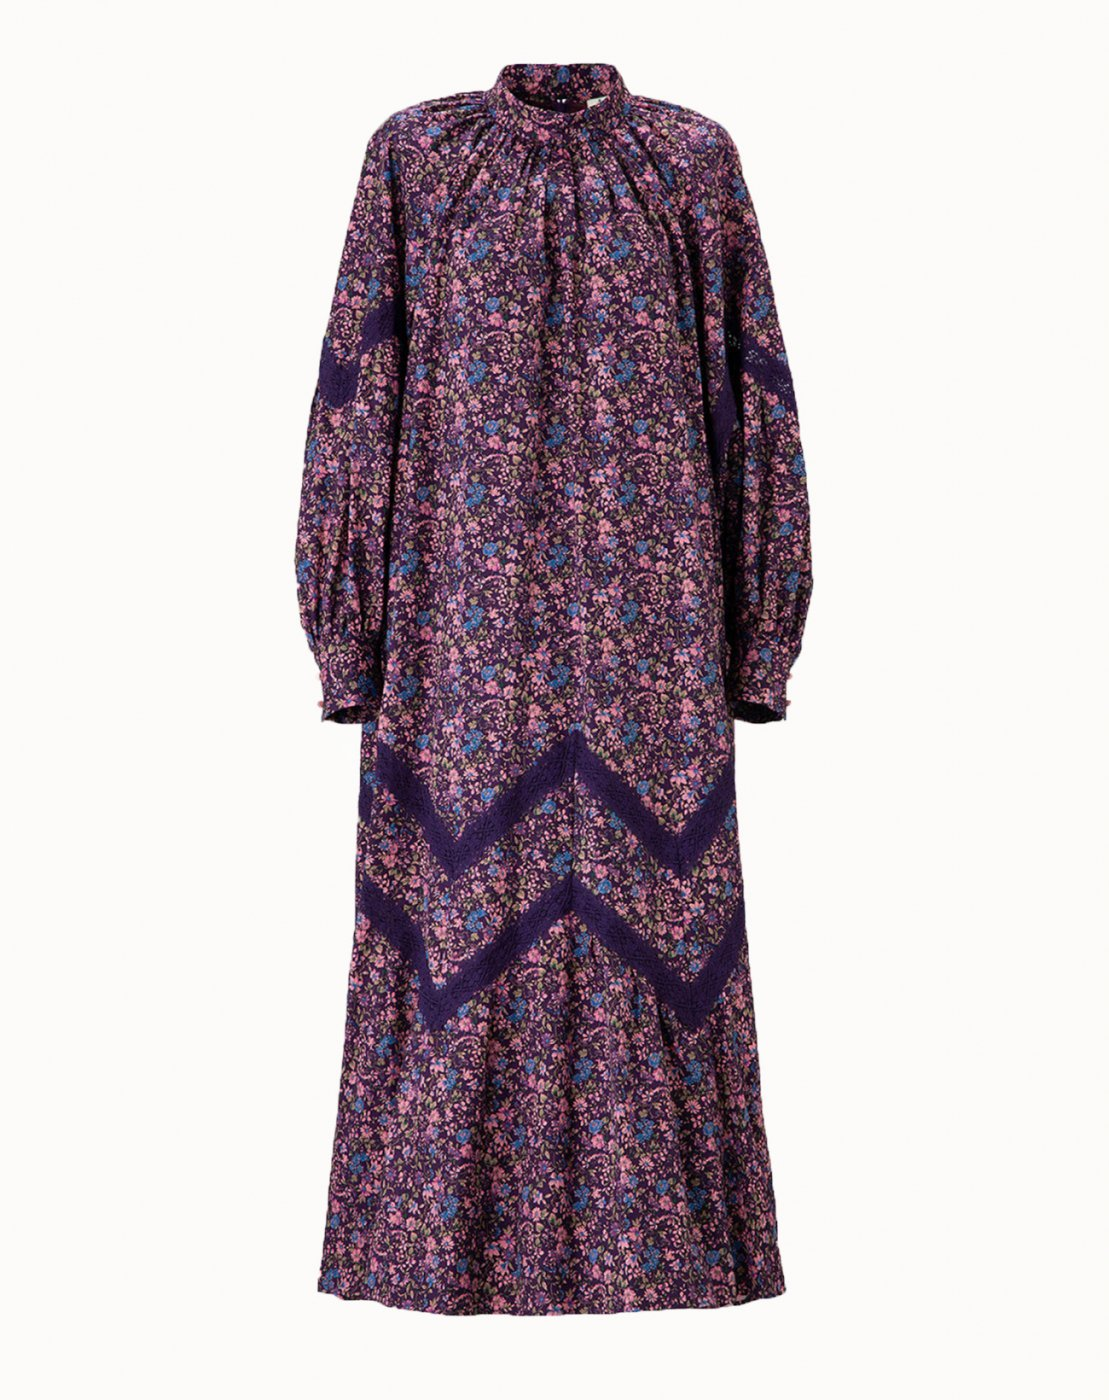 leur logette - Cotton Printed Dress 【Limited Edition】- Grape